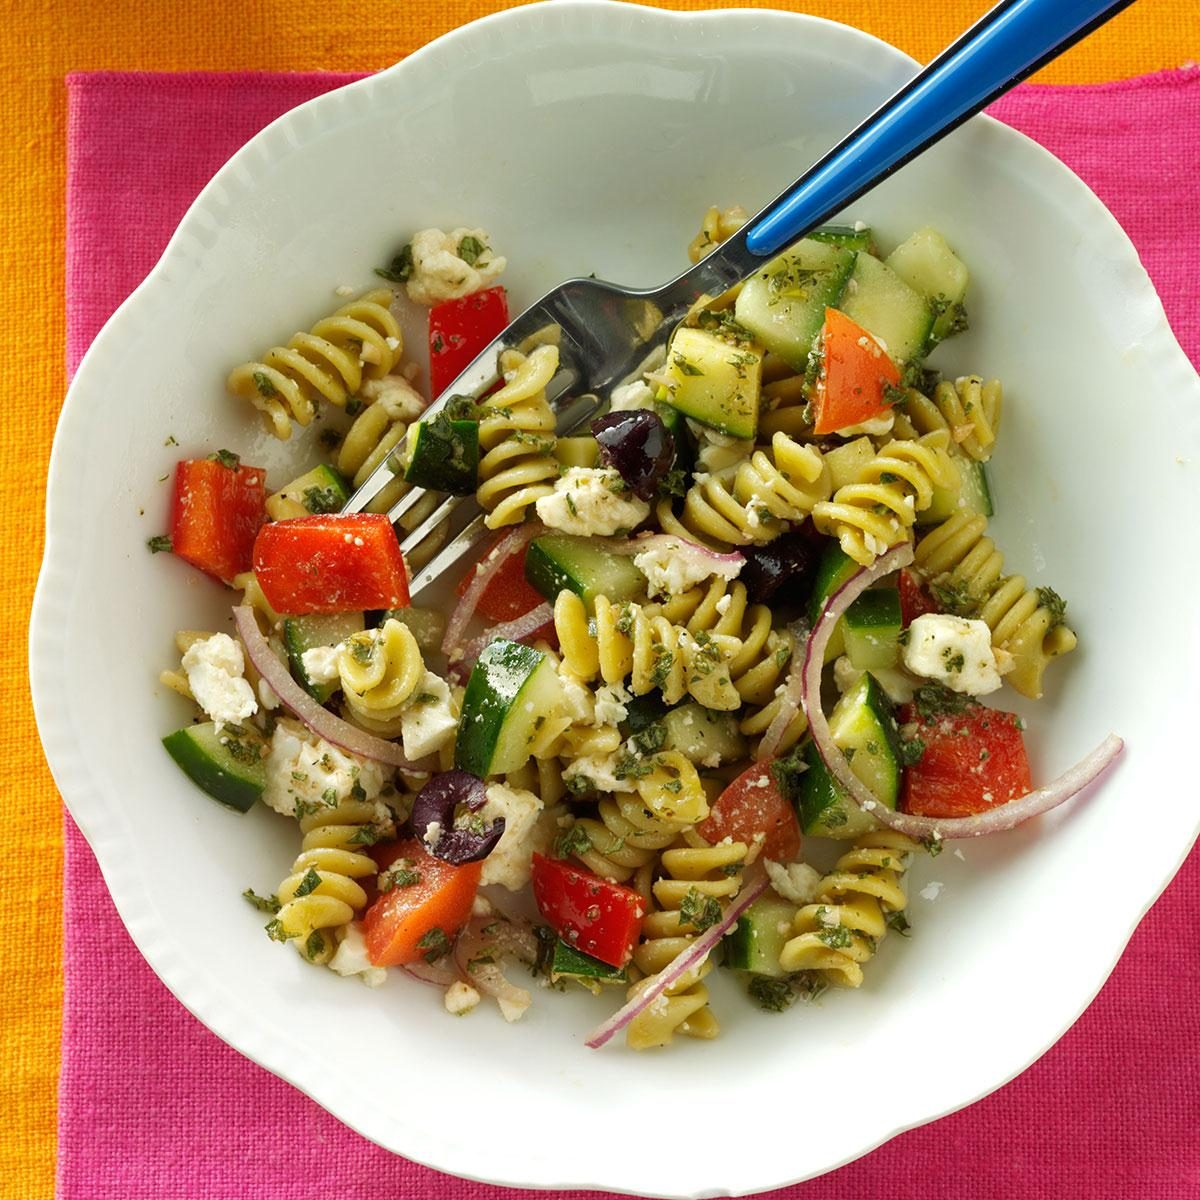 Inspired by: Portillo's Greek Pasta Side Salad